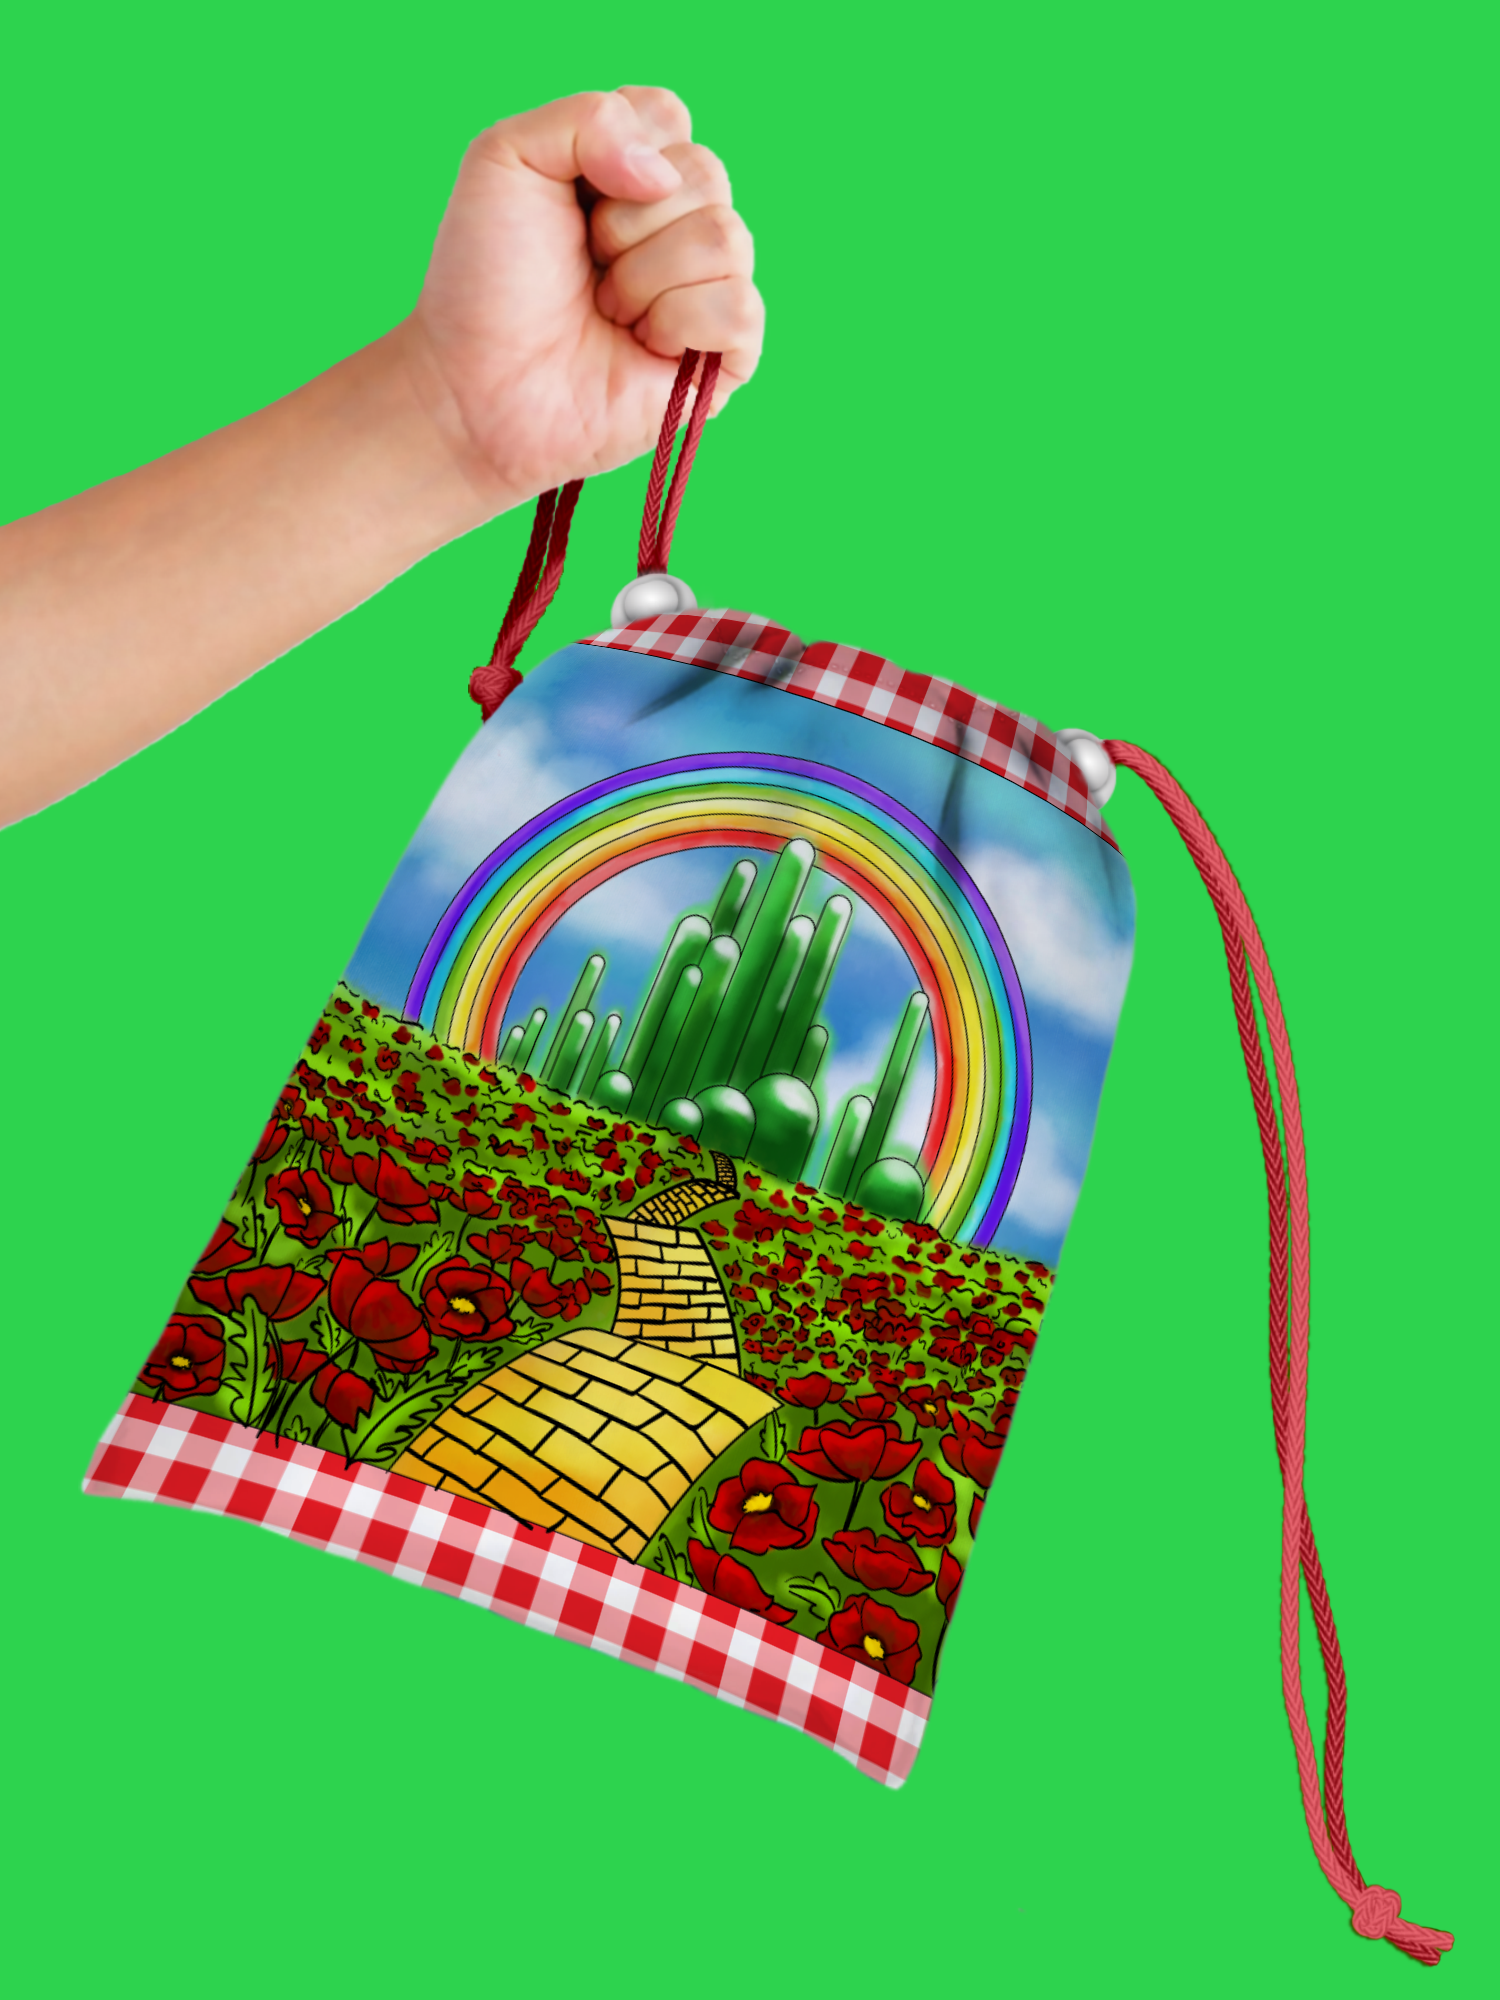 The Wonderful Wizard of Oz Drawstring Tote Bag (10 Pack) - BirthdayGalore.com